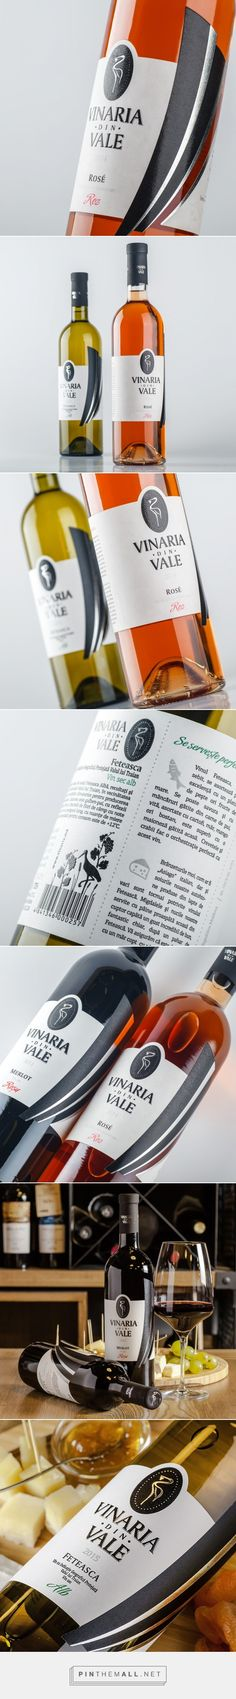 Vinaria din Vale - Packaging of the World - Creative Package Design Gallery - http://www.packagingoftheworld.com/2017/02/vinaria-din-vale.html